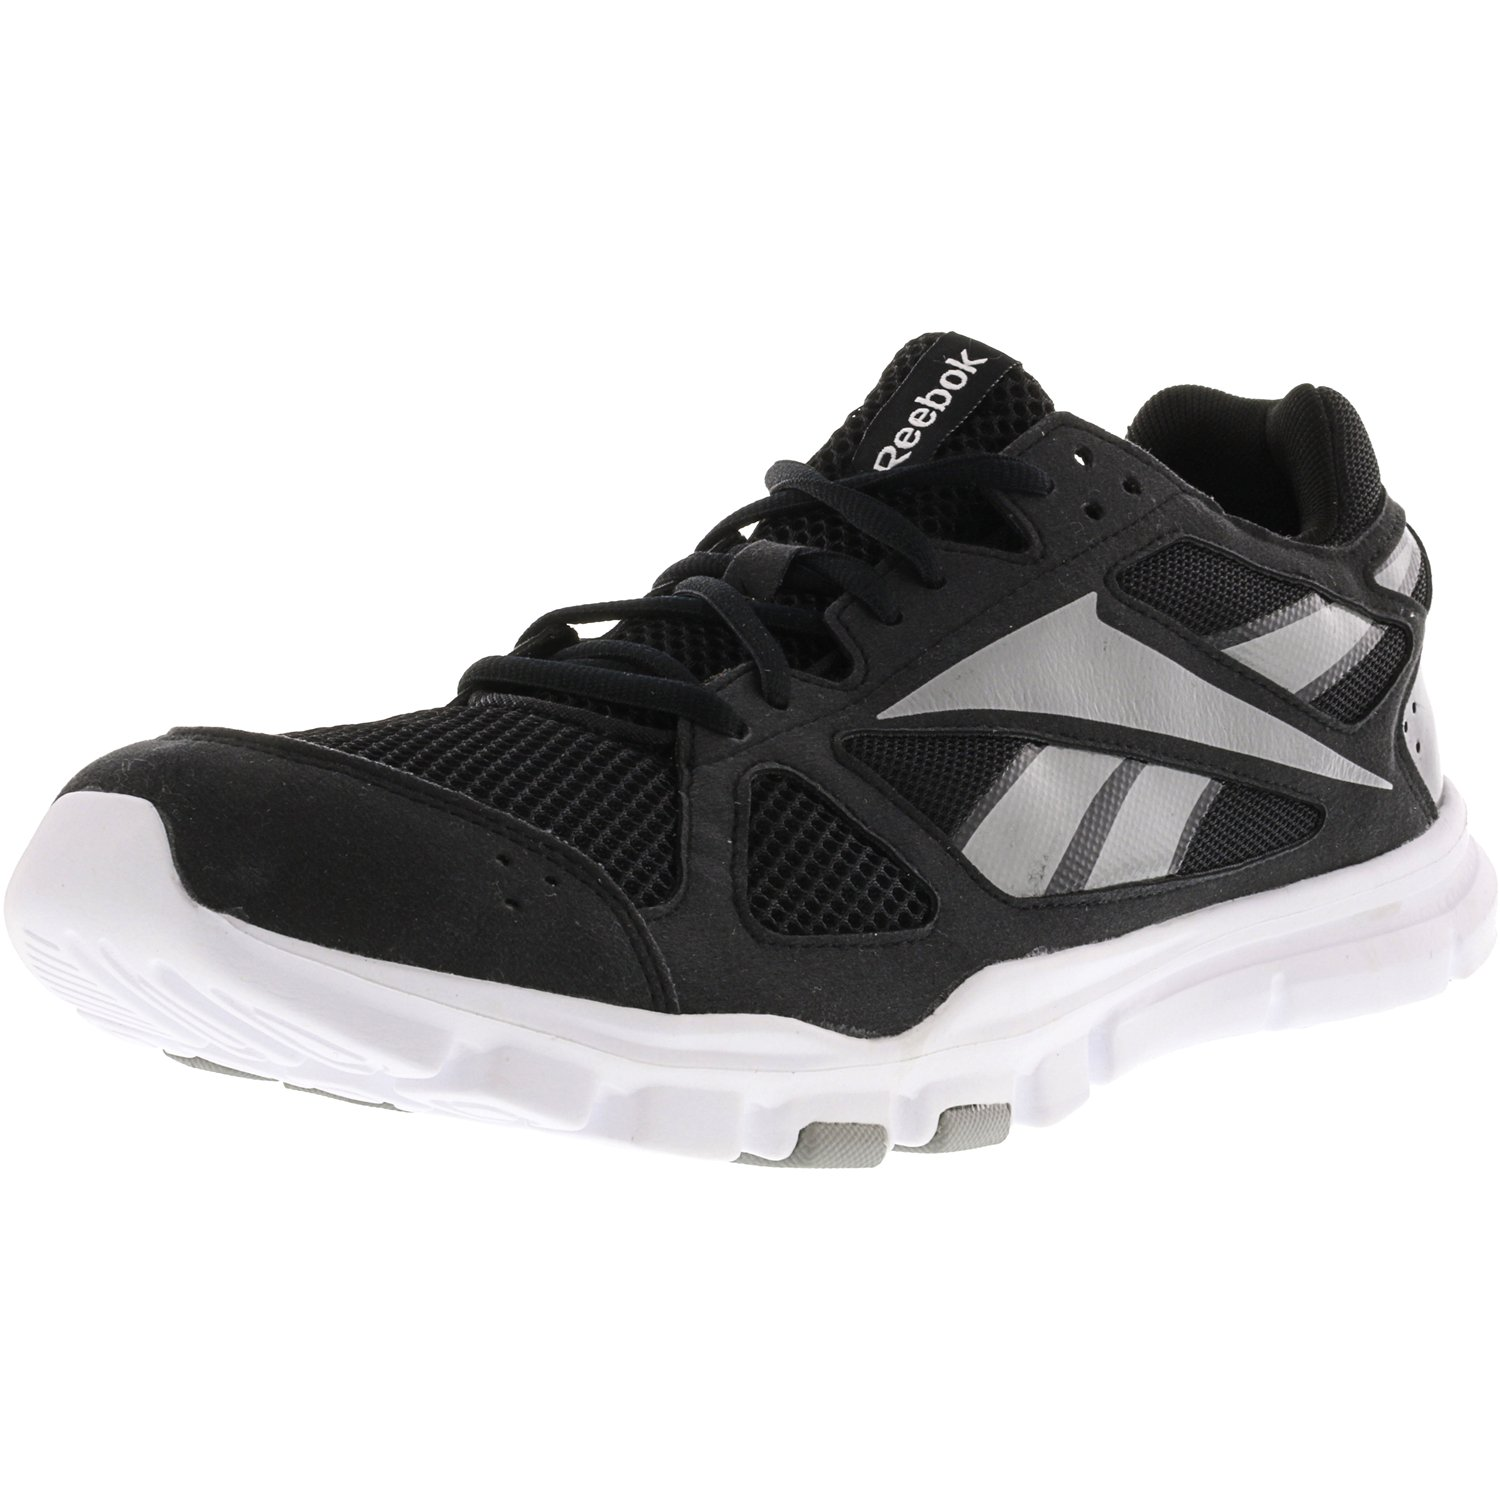 Reebok Men's Yourflex Train 2.0 Black / Tin Grey White Ankle-High Training Shoes - 11M